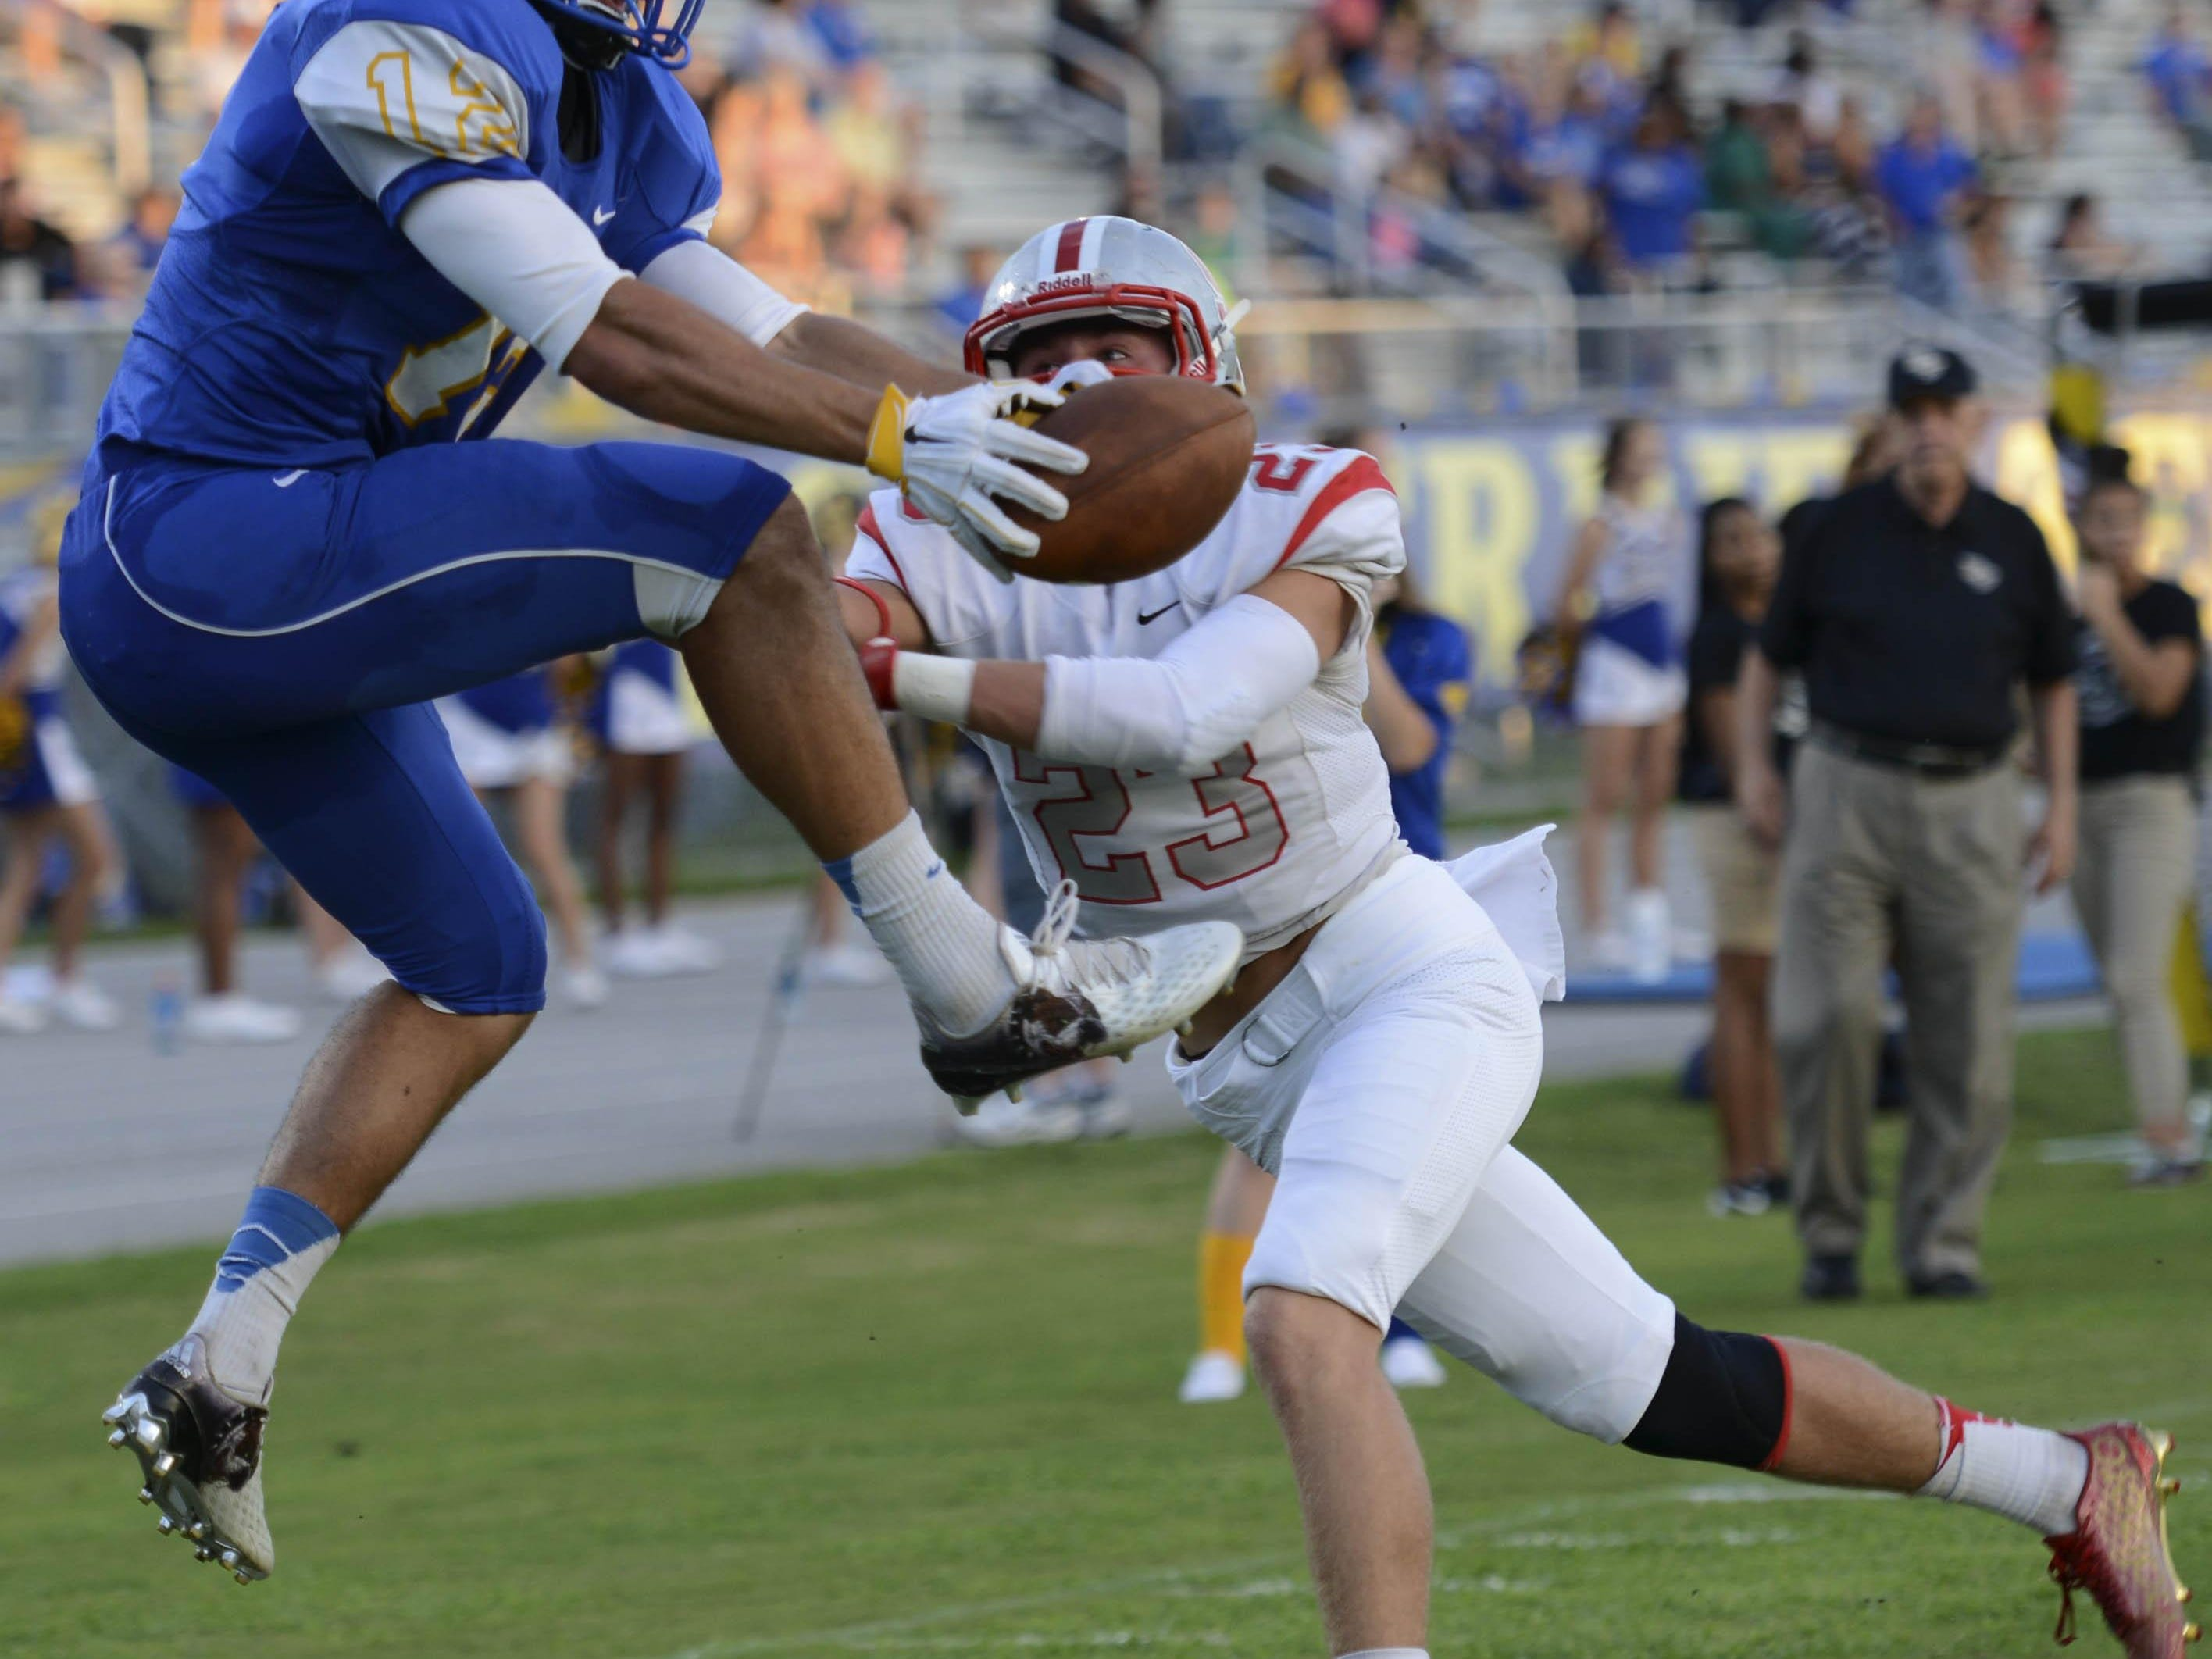 Titusville's Tommy Mack goes over Satellite's Caden Larkin (23) to make the TD catch during Friday's game in Titusville.